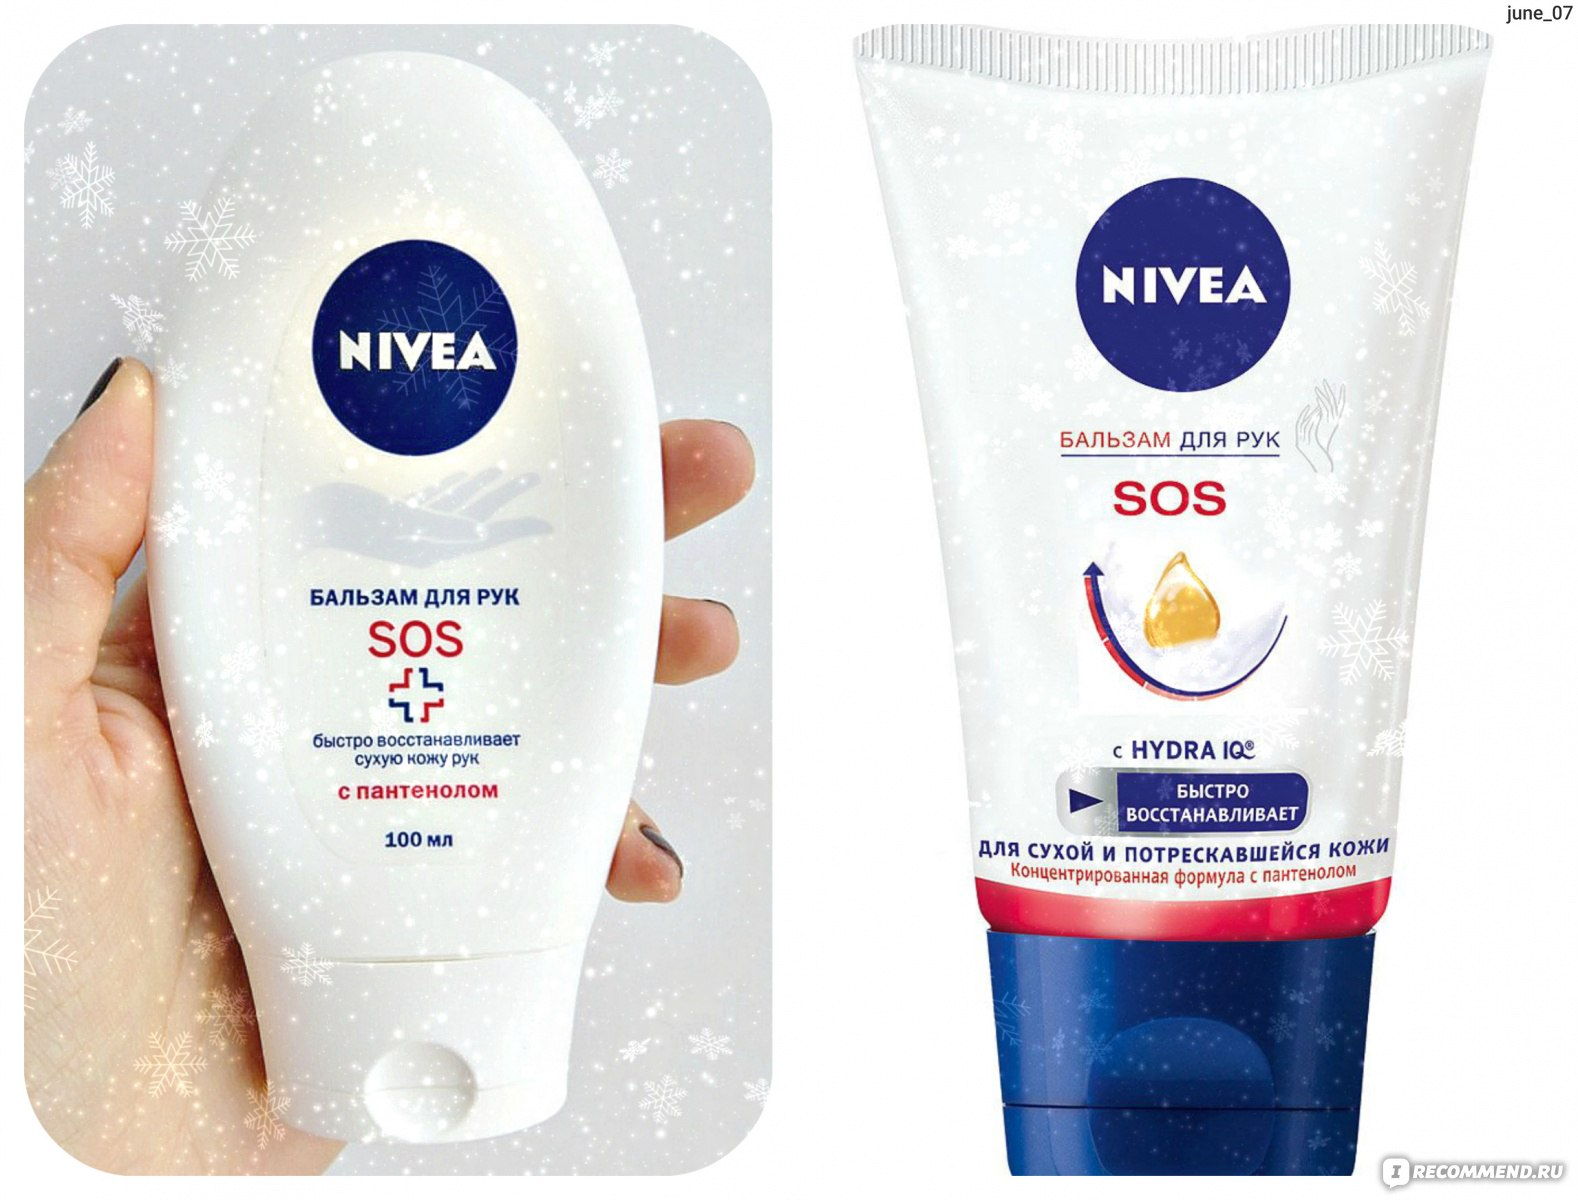 nivea essay Introduction nivea is an established name in high quality skin and beauty care products it is part of a range of brands produced and sold by beiersdorf.